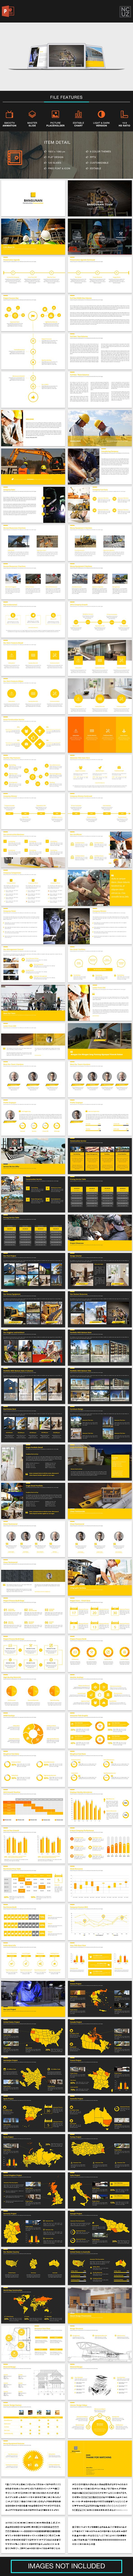 Construction powerpoint presentation business powerpoint construction powerpoint presentation alramifo Images